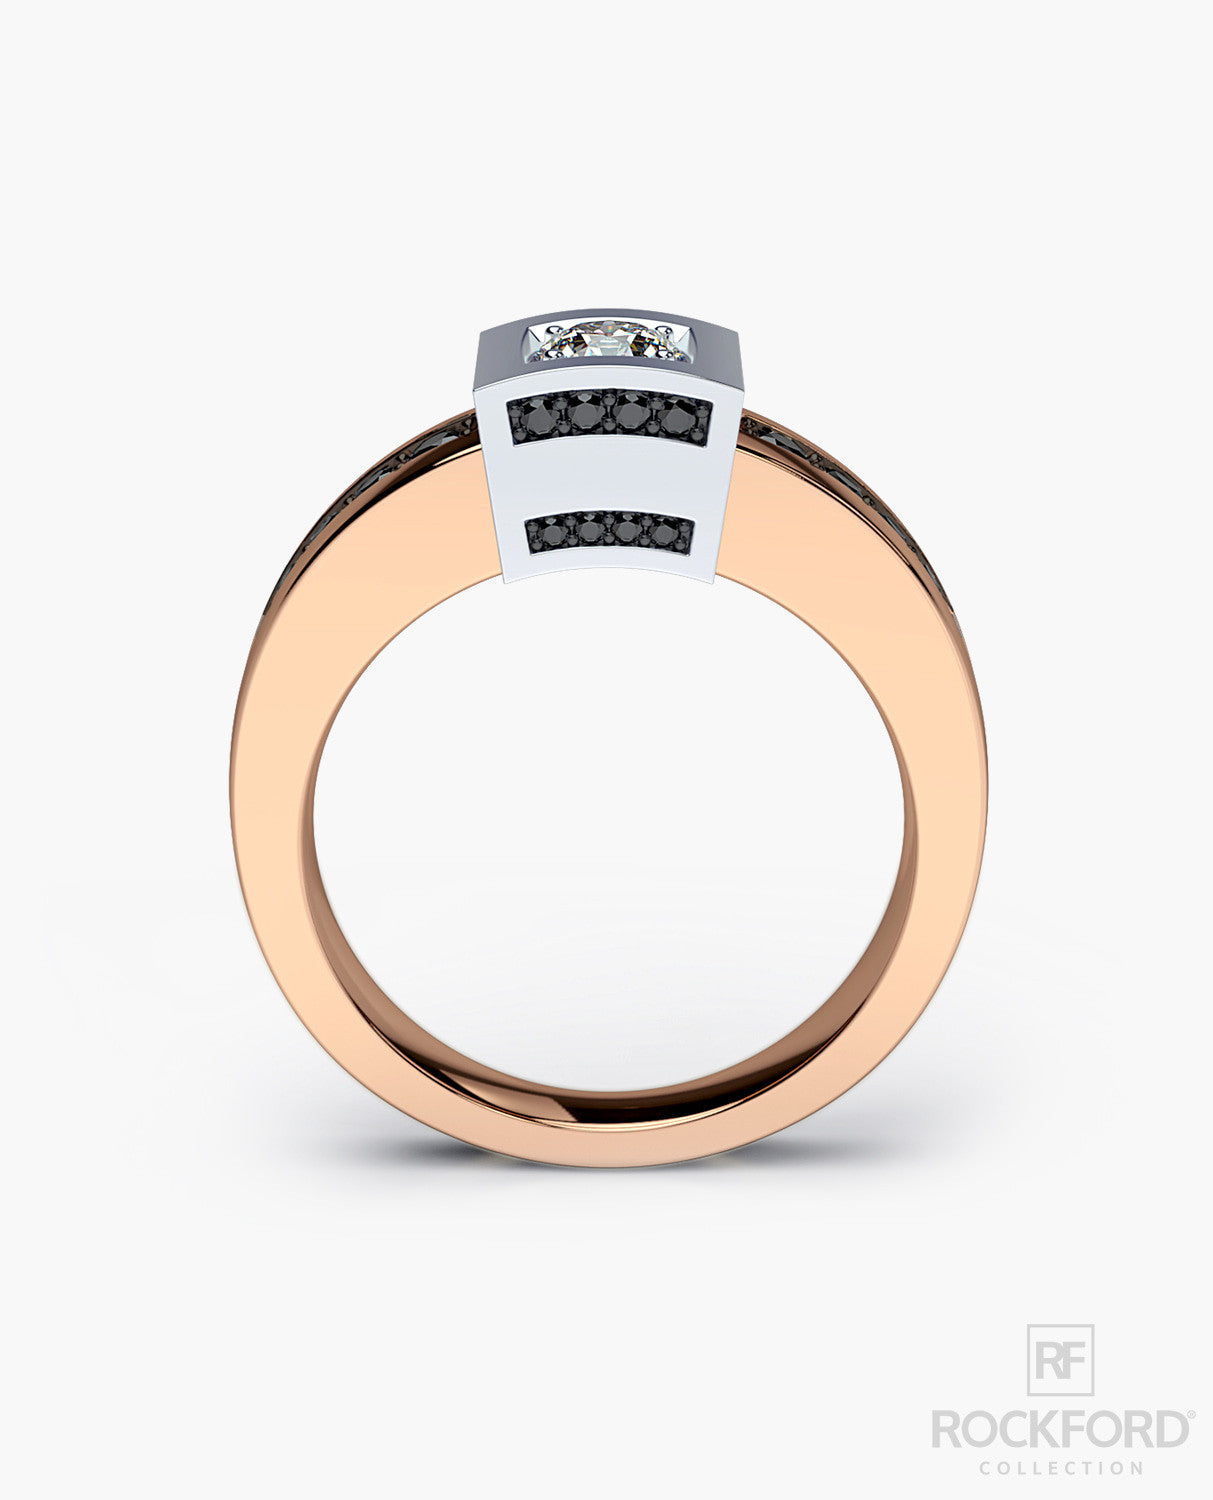 VULTURE Mens Two-Tone Gold Wedding Ring with Diamonds